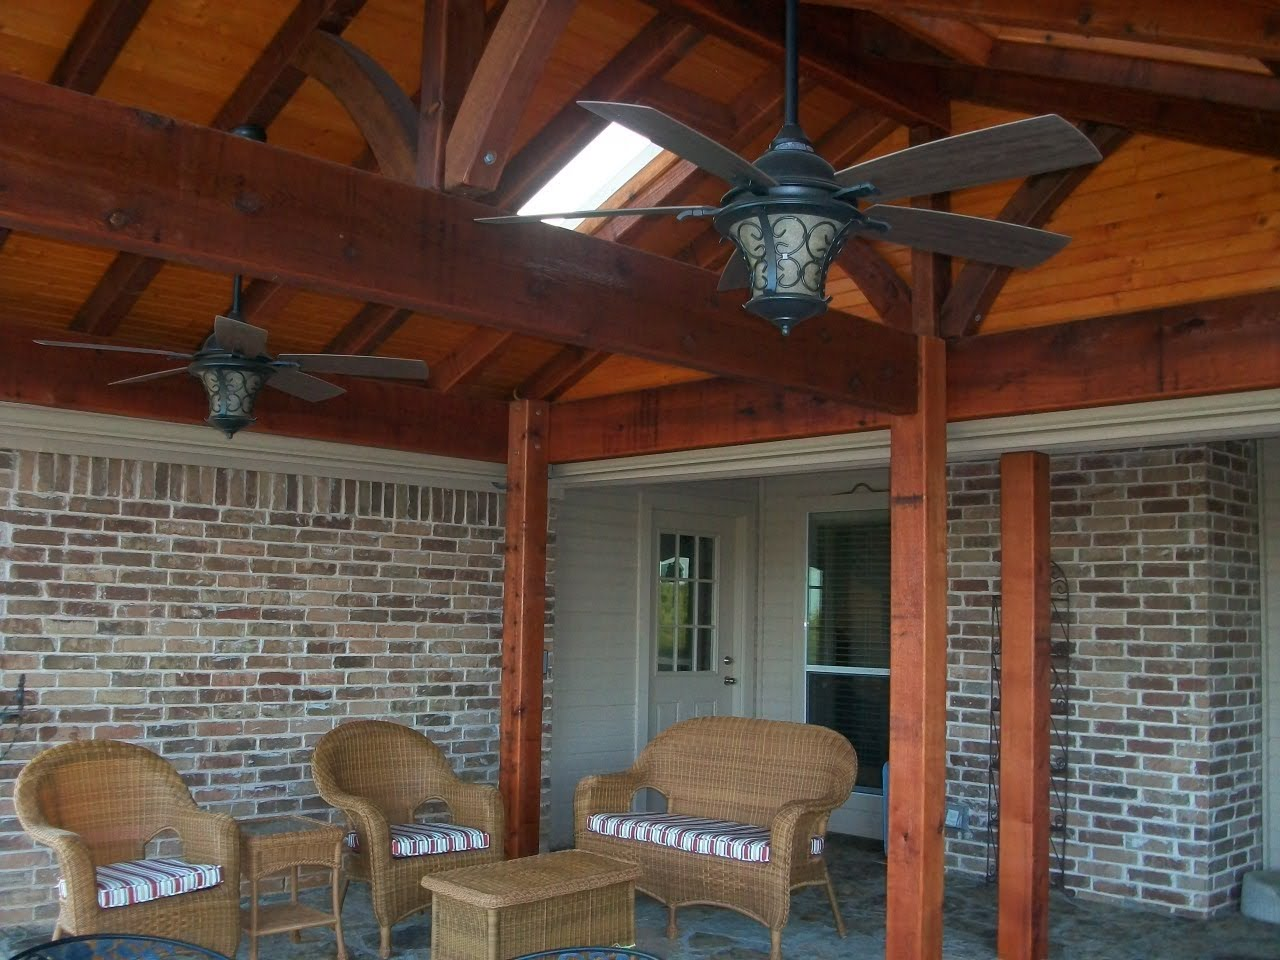 We Decided To Add A Covered Patio And A Hot Tub With A Pergola. We Could  Have Kept Going, But Ran Out Of Money. We Plan To Extend The Patio And Add  ...